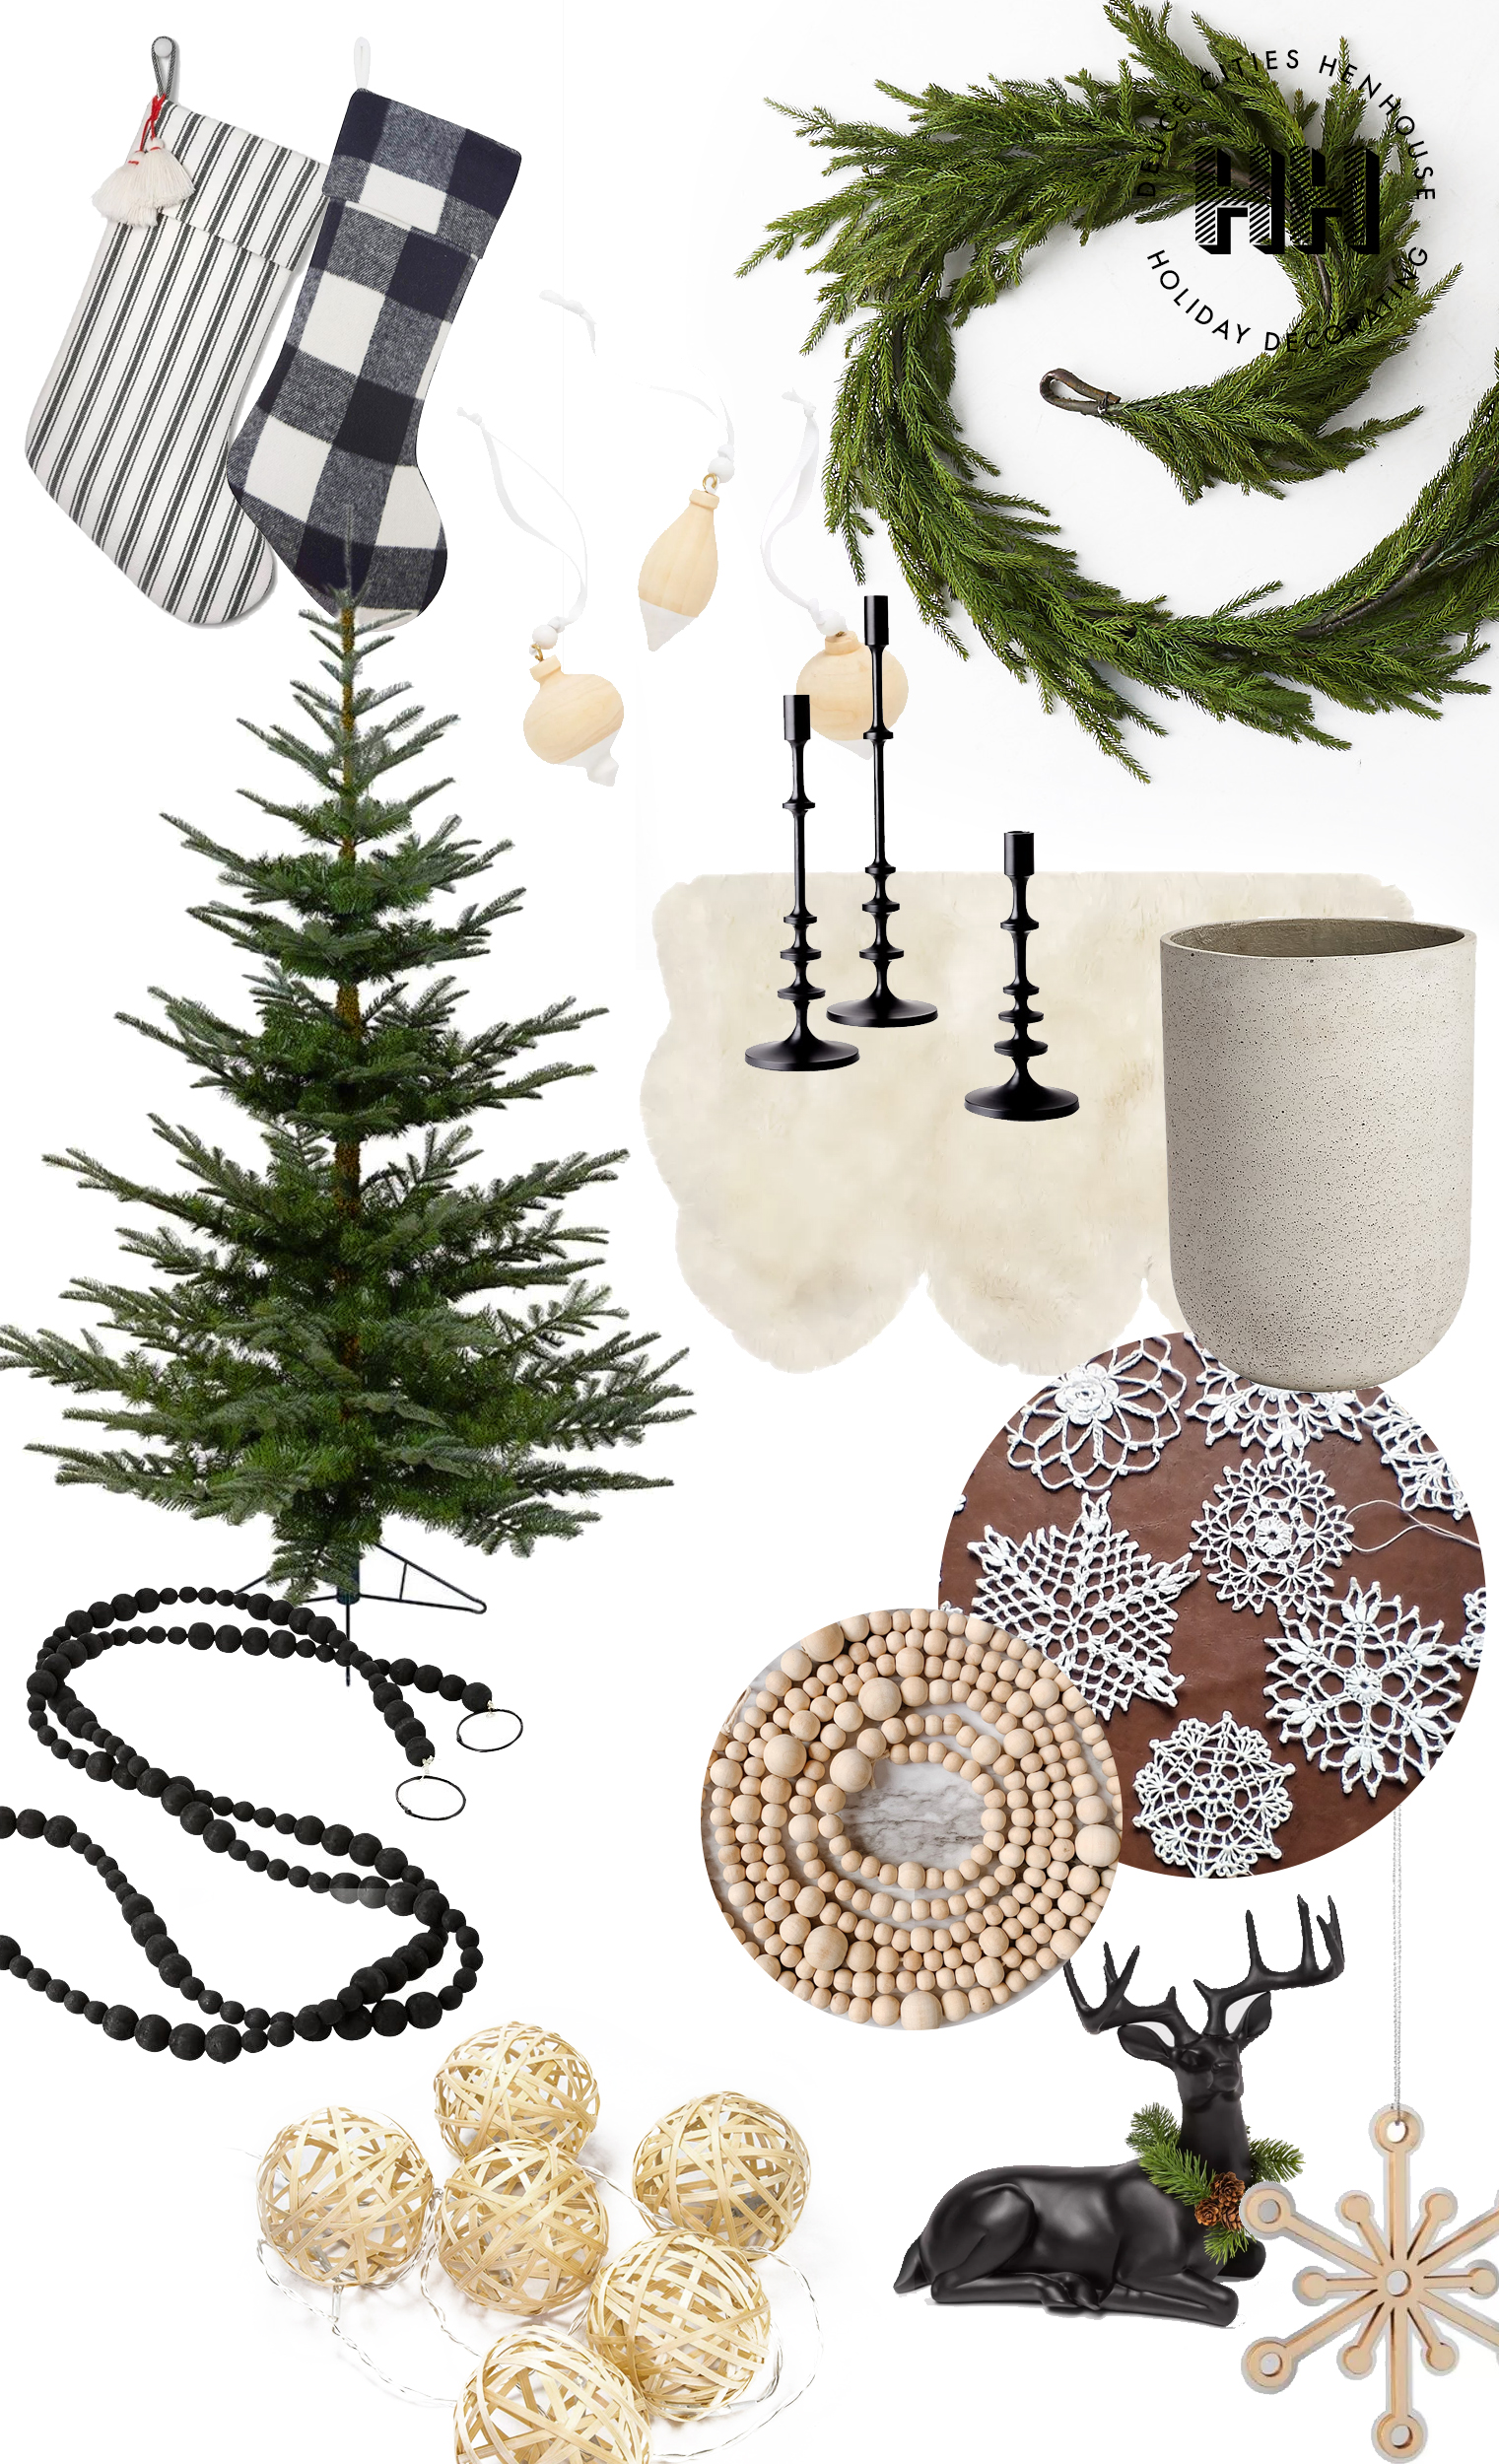 Decorating for a Minimal Rustic Christmas